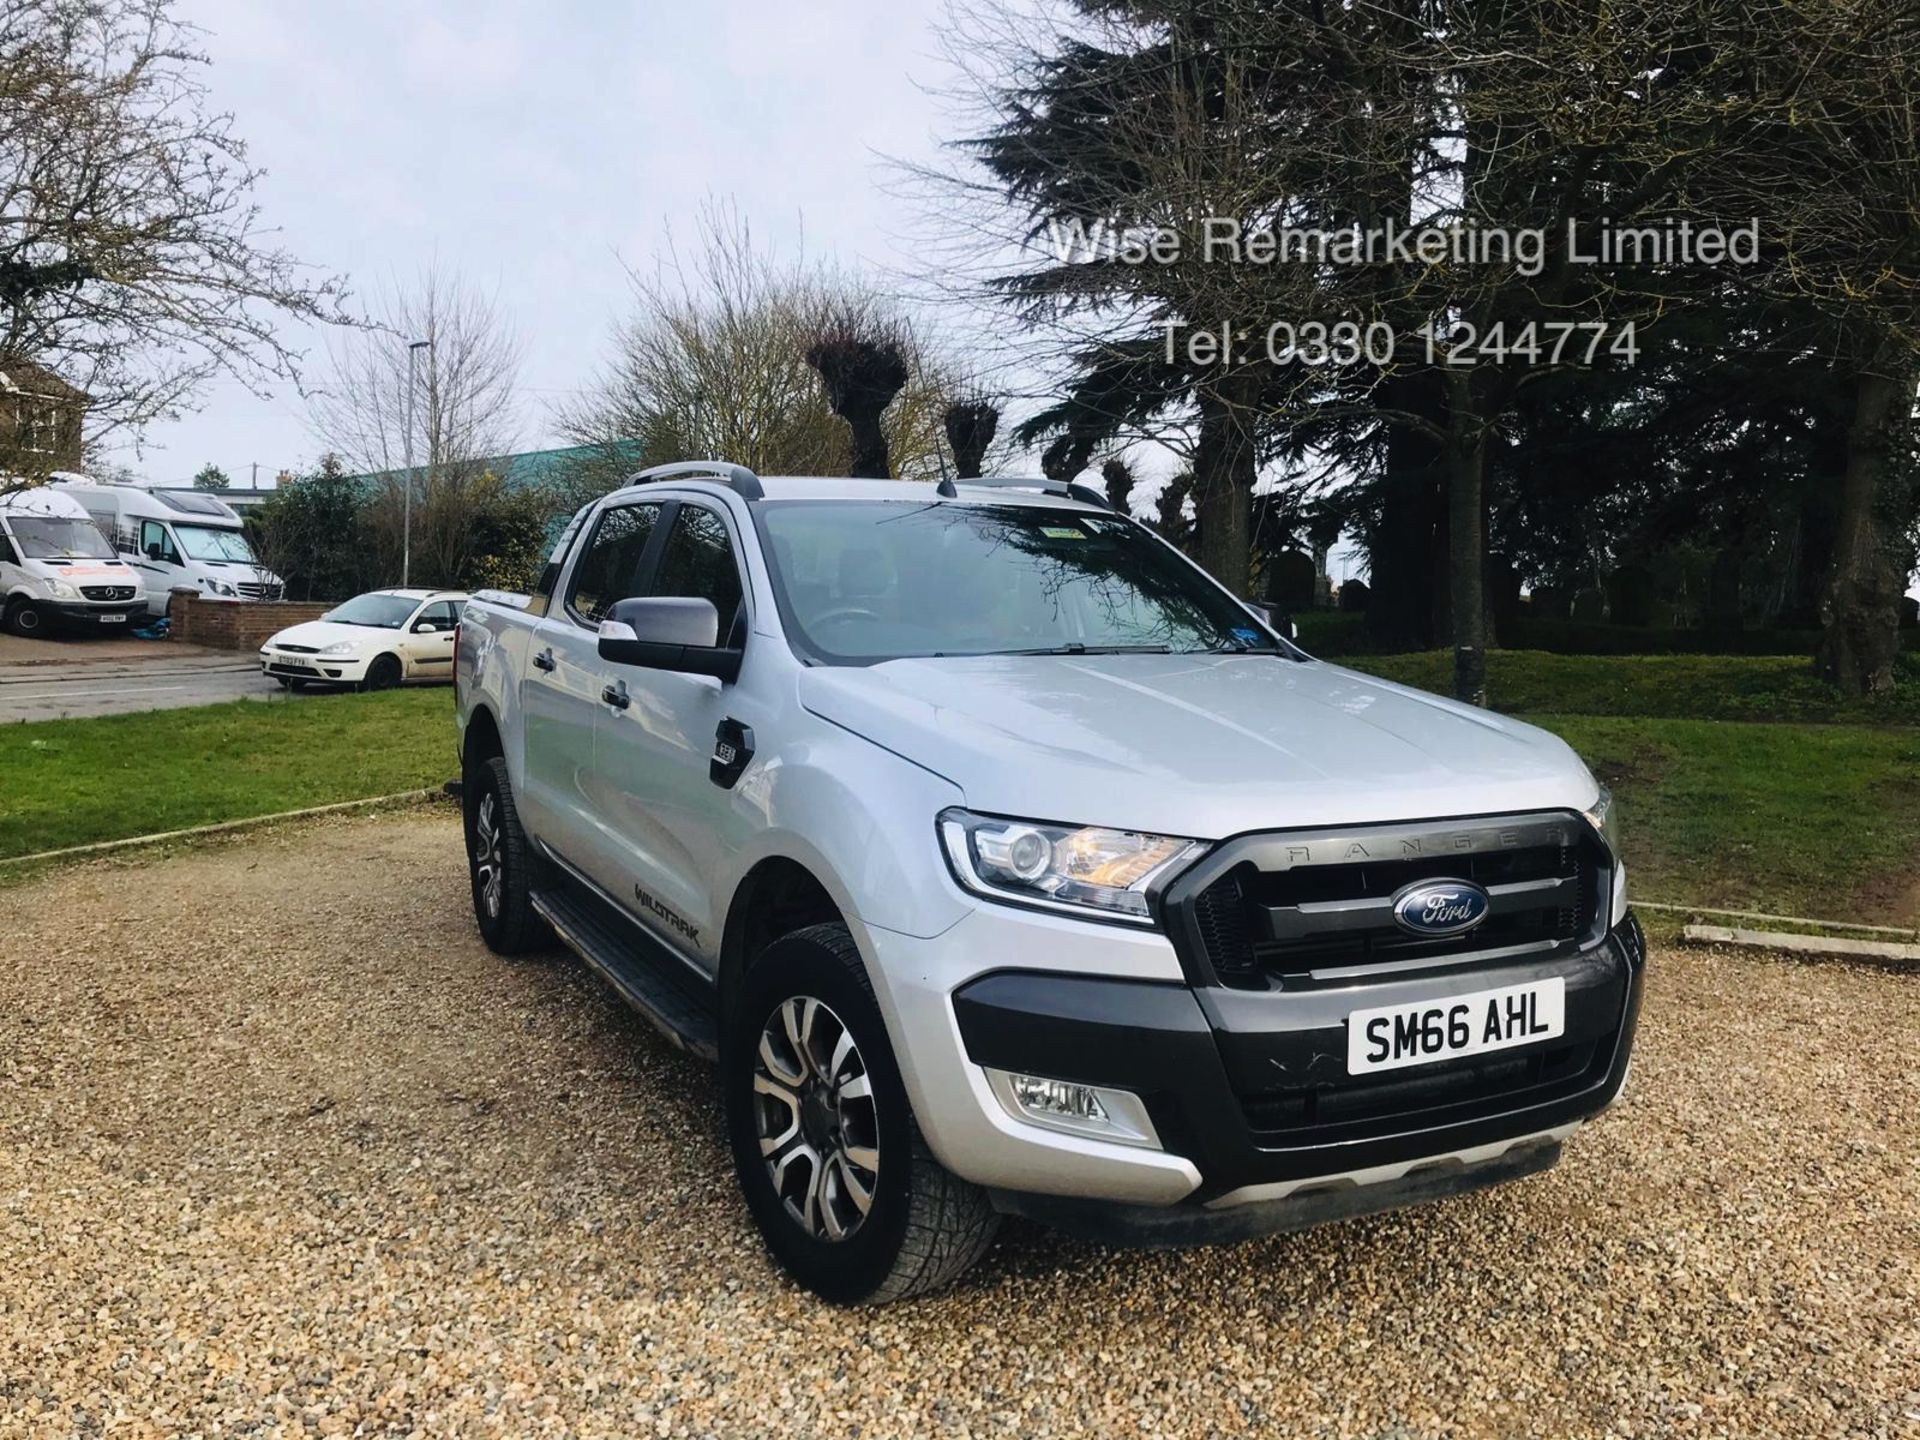 Lot 7a - Ford Ranger 3.2 TDCI WILDTRAK - Auto - 2017 Model - 1 Former Keeper - 4x4 - TOP OF THE RANGE